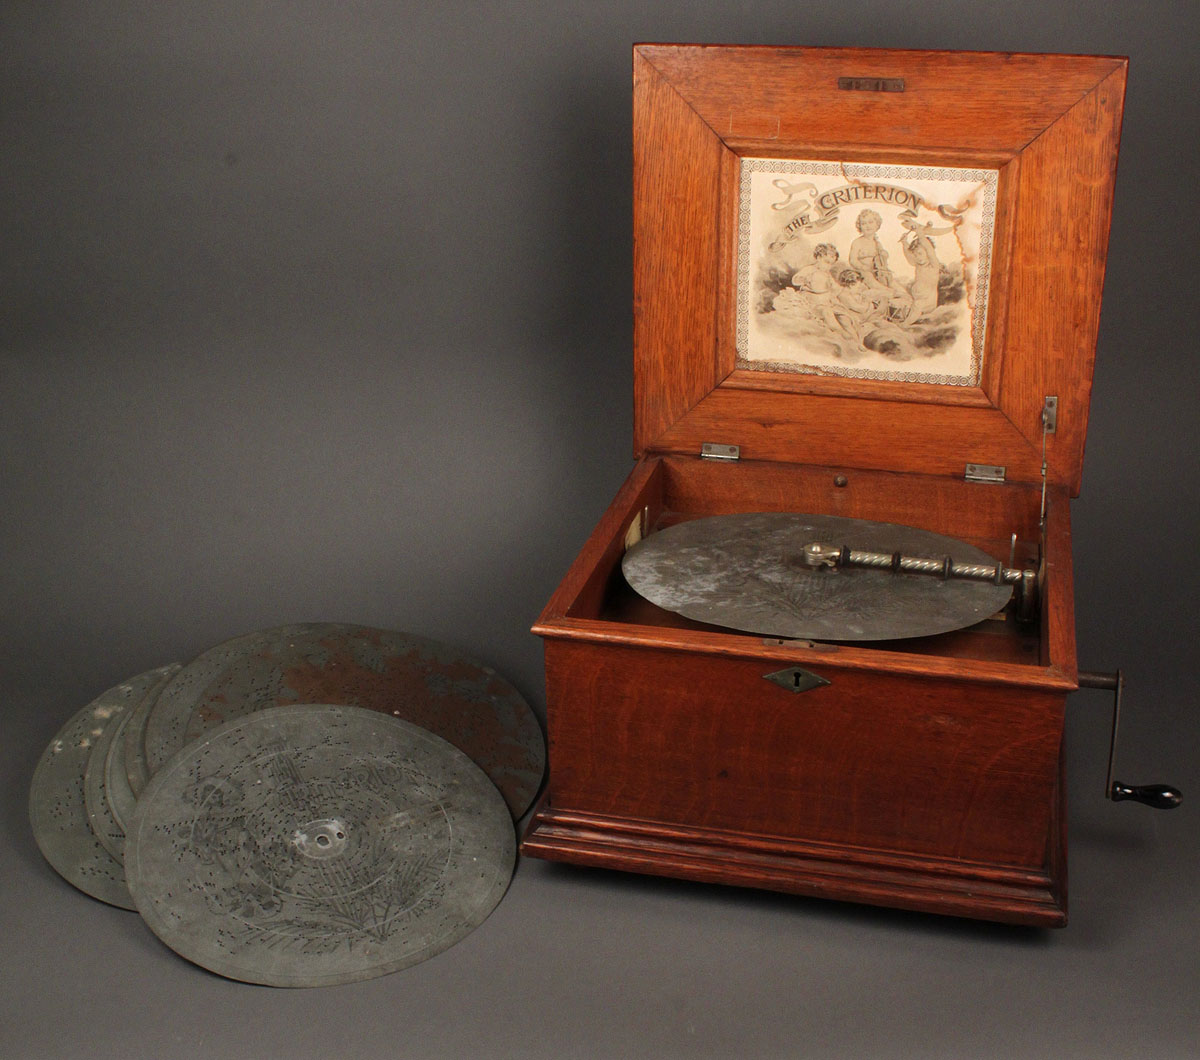 Lot 489: The Criterion Music Box w/ discs